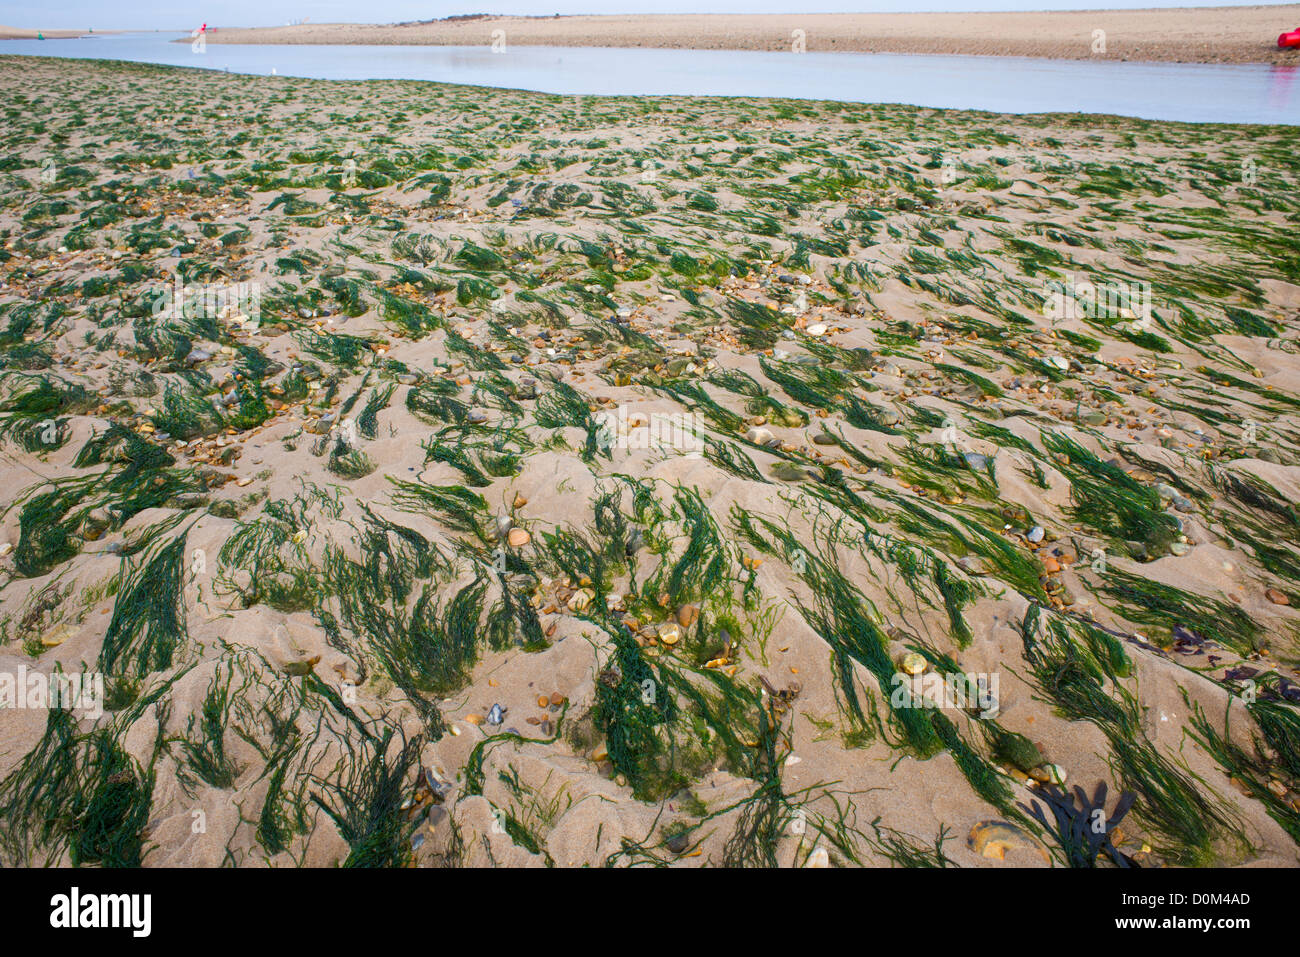 Enteromorpha (Enteromorpha spp.) exposed on sandbank at low tide, Wells next the Sea, Norfolk, England, November - Stock Image